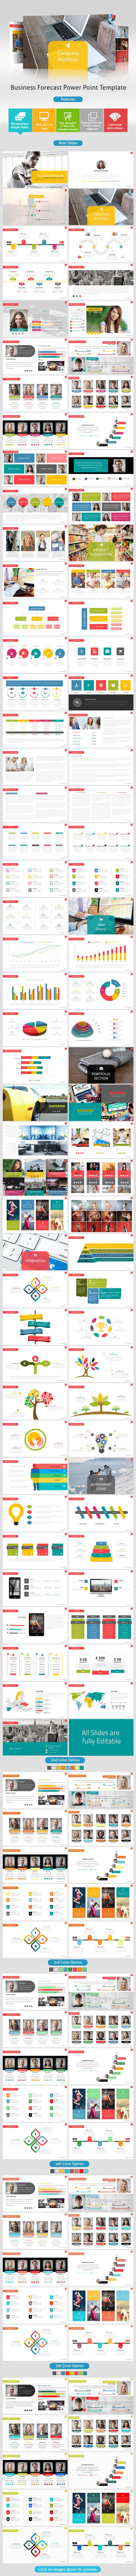 Business Forecast  Power Point Presentation (PowerPoint Templates)